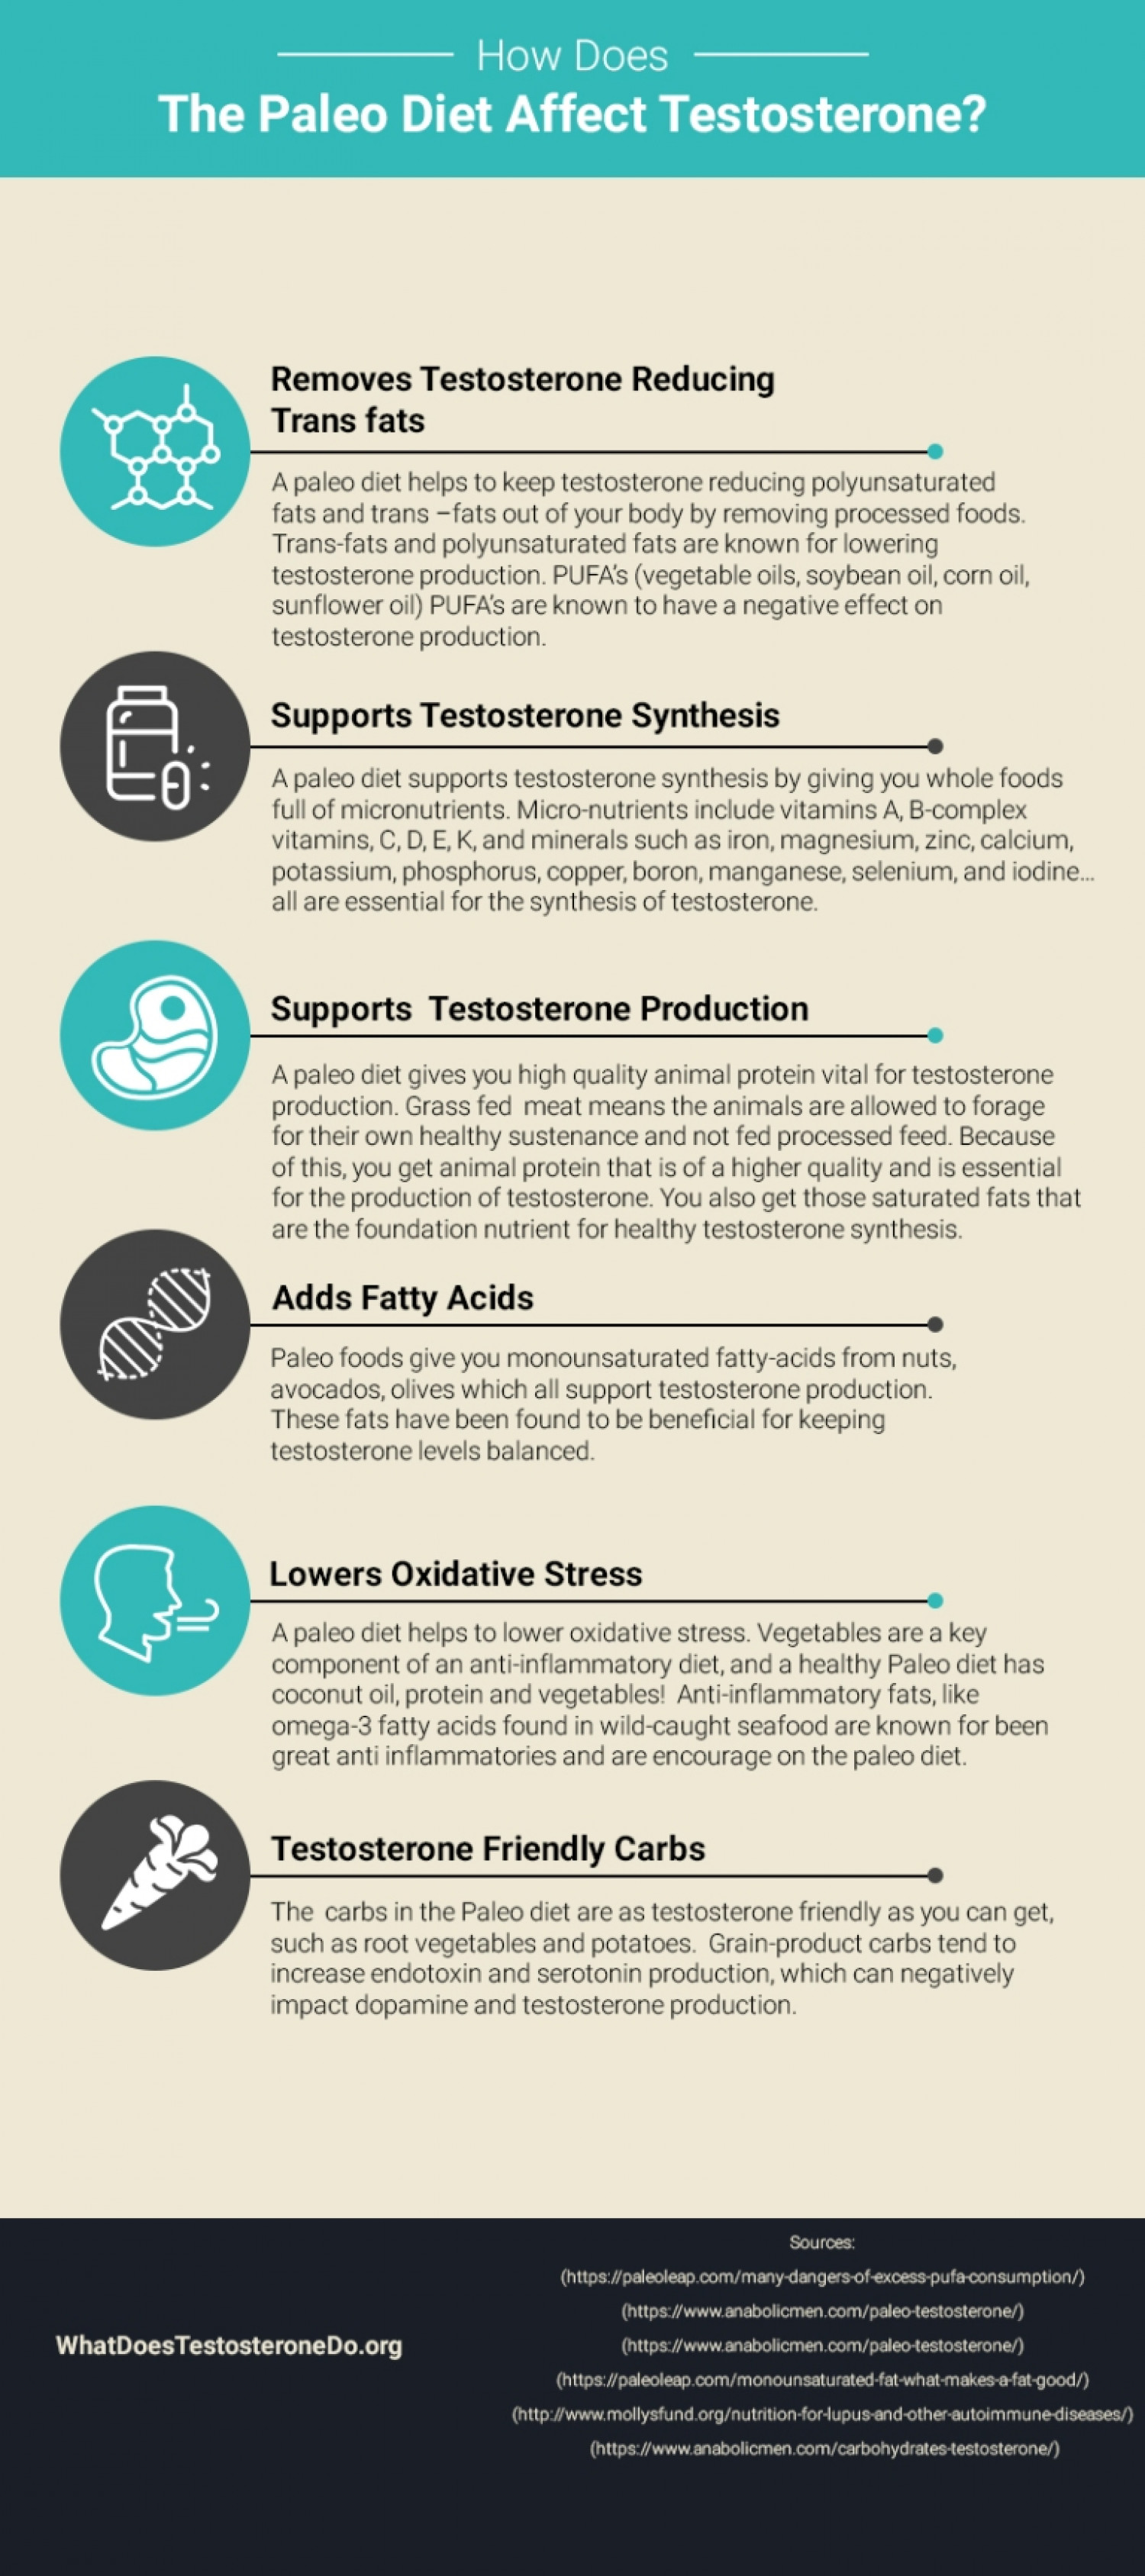 How Does The Paleo Diet Affect Testosterone? Infographic